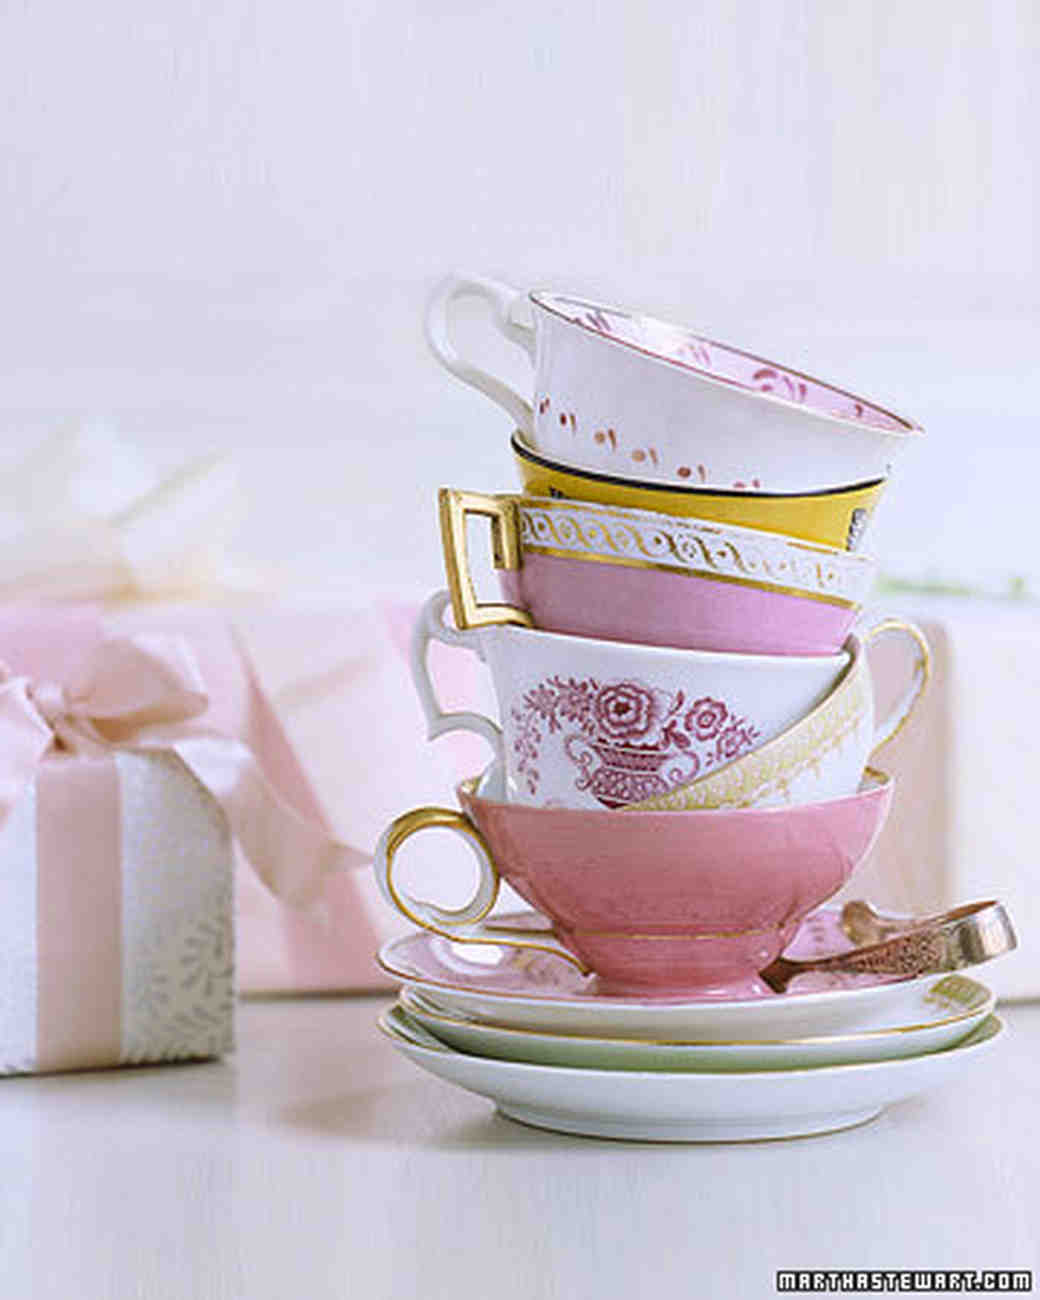 That was hilarious! I've known quite a few East Indian men and I know the video is mostly true! lol